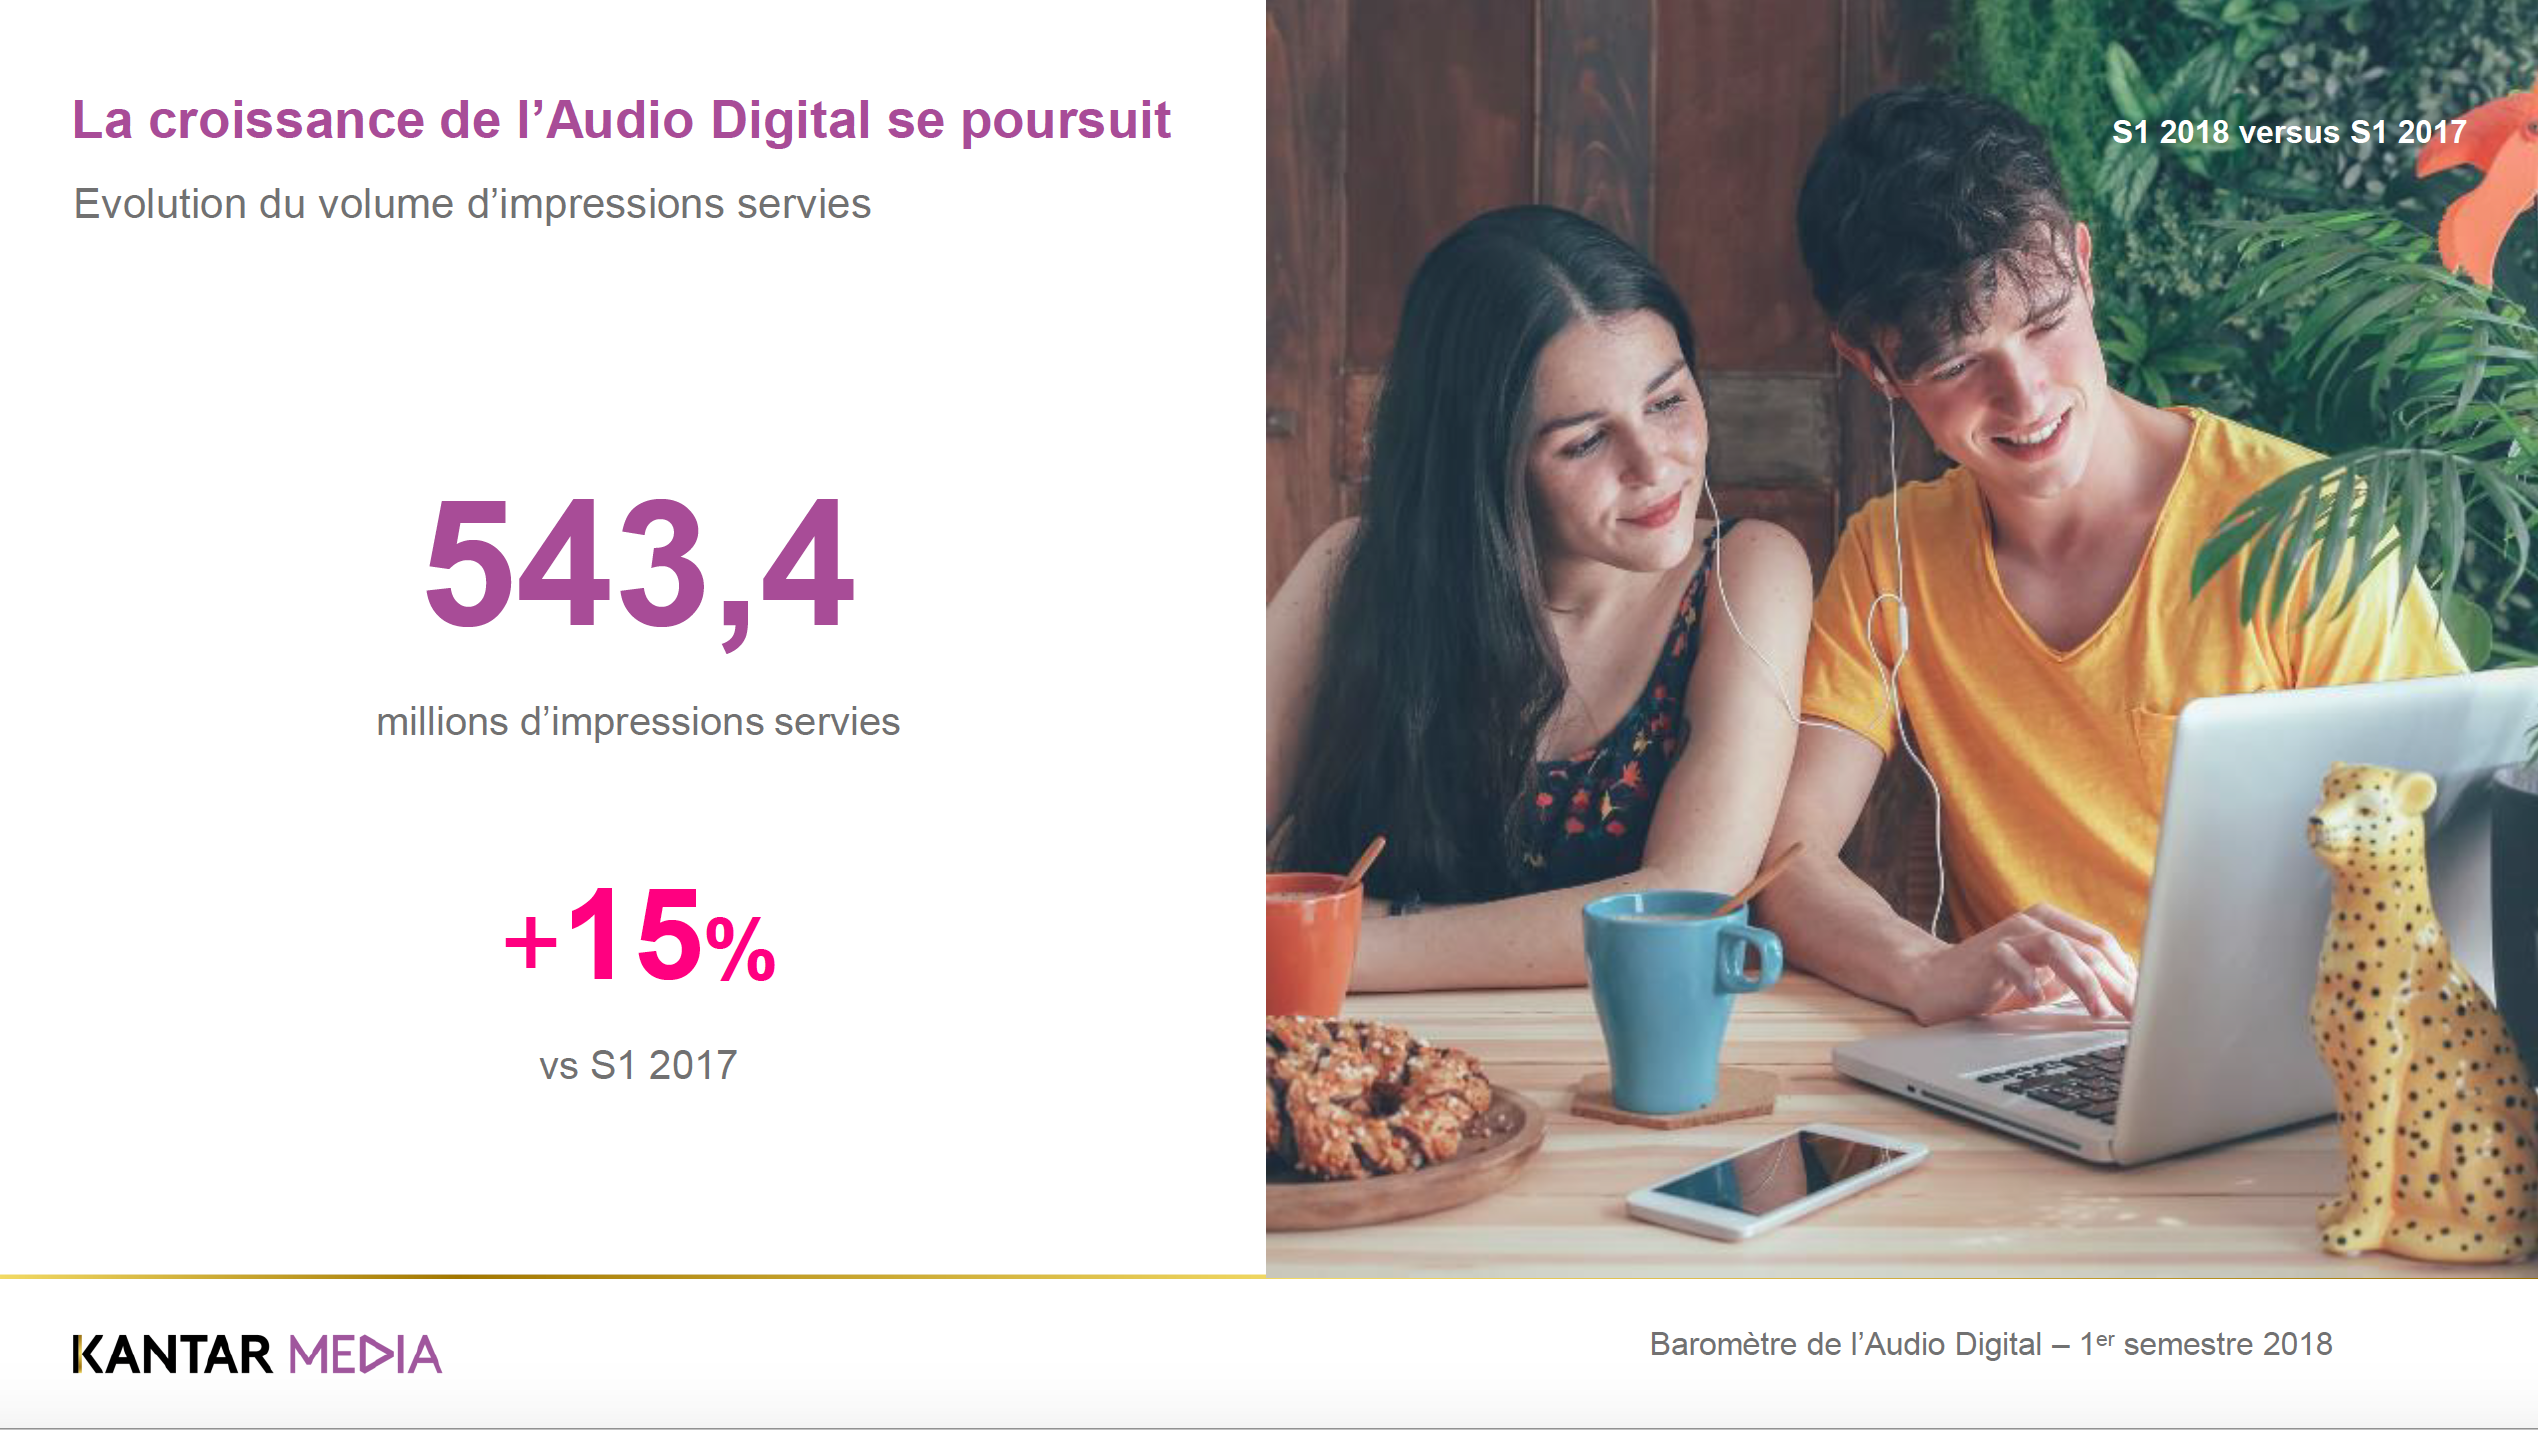 La croissance de l'Audio Digital se poursuit